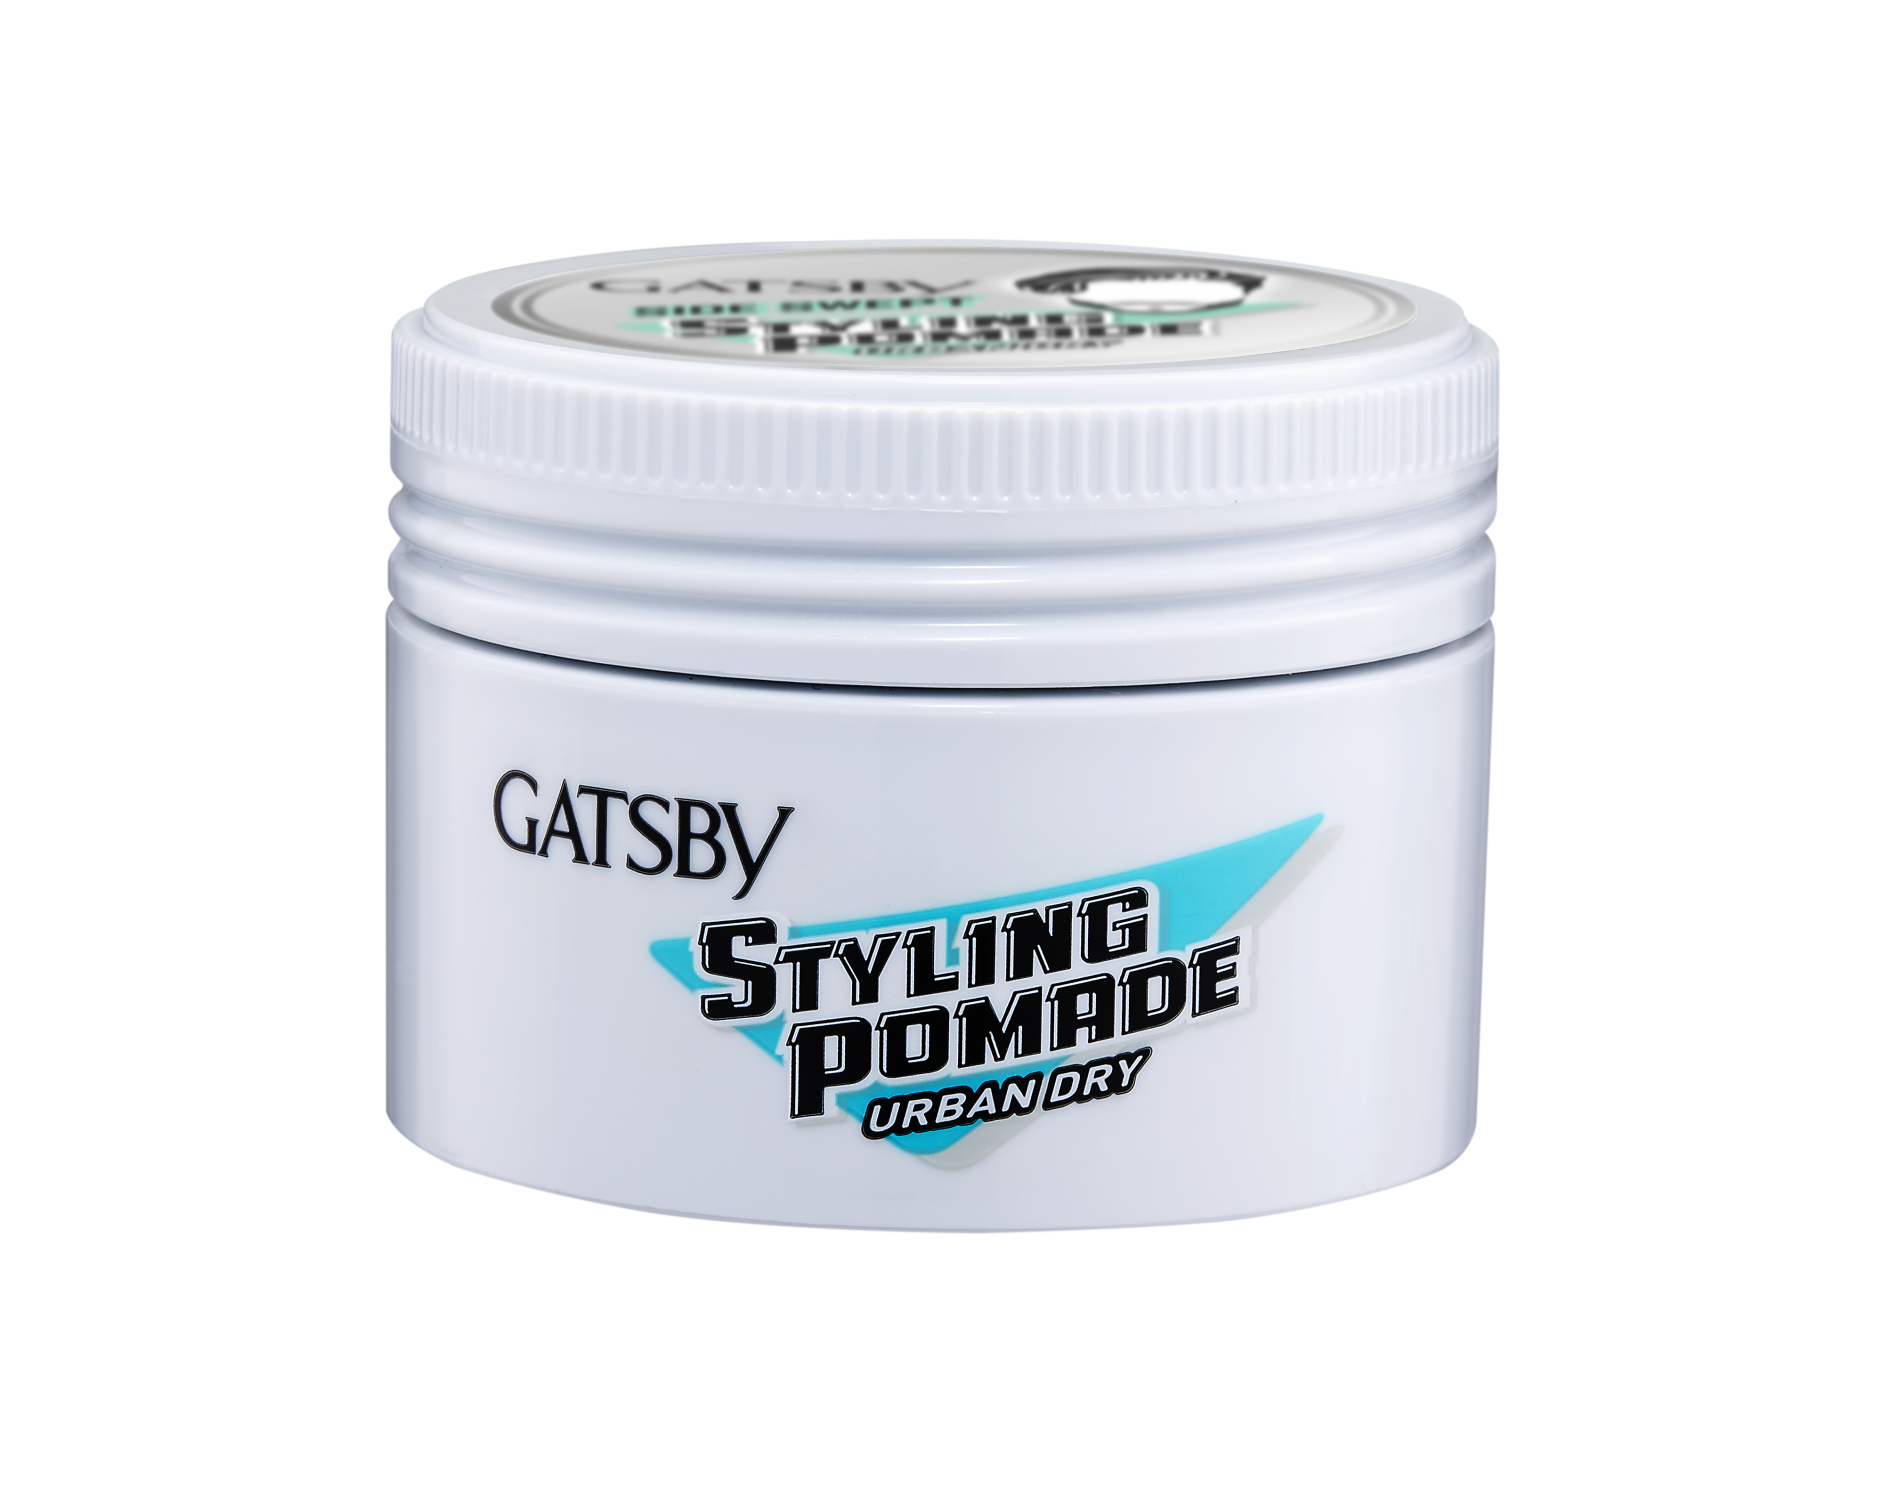 GATSBY Styling Pomade Urban Dry